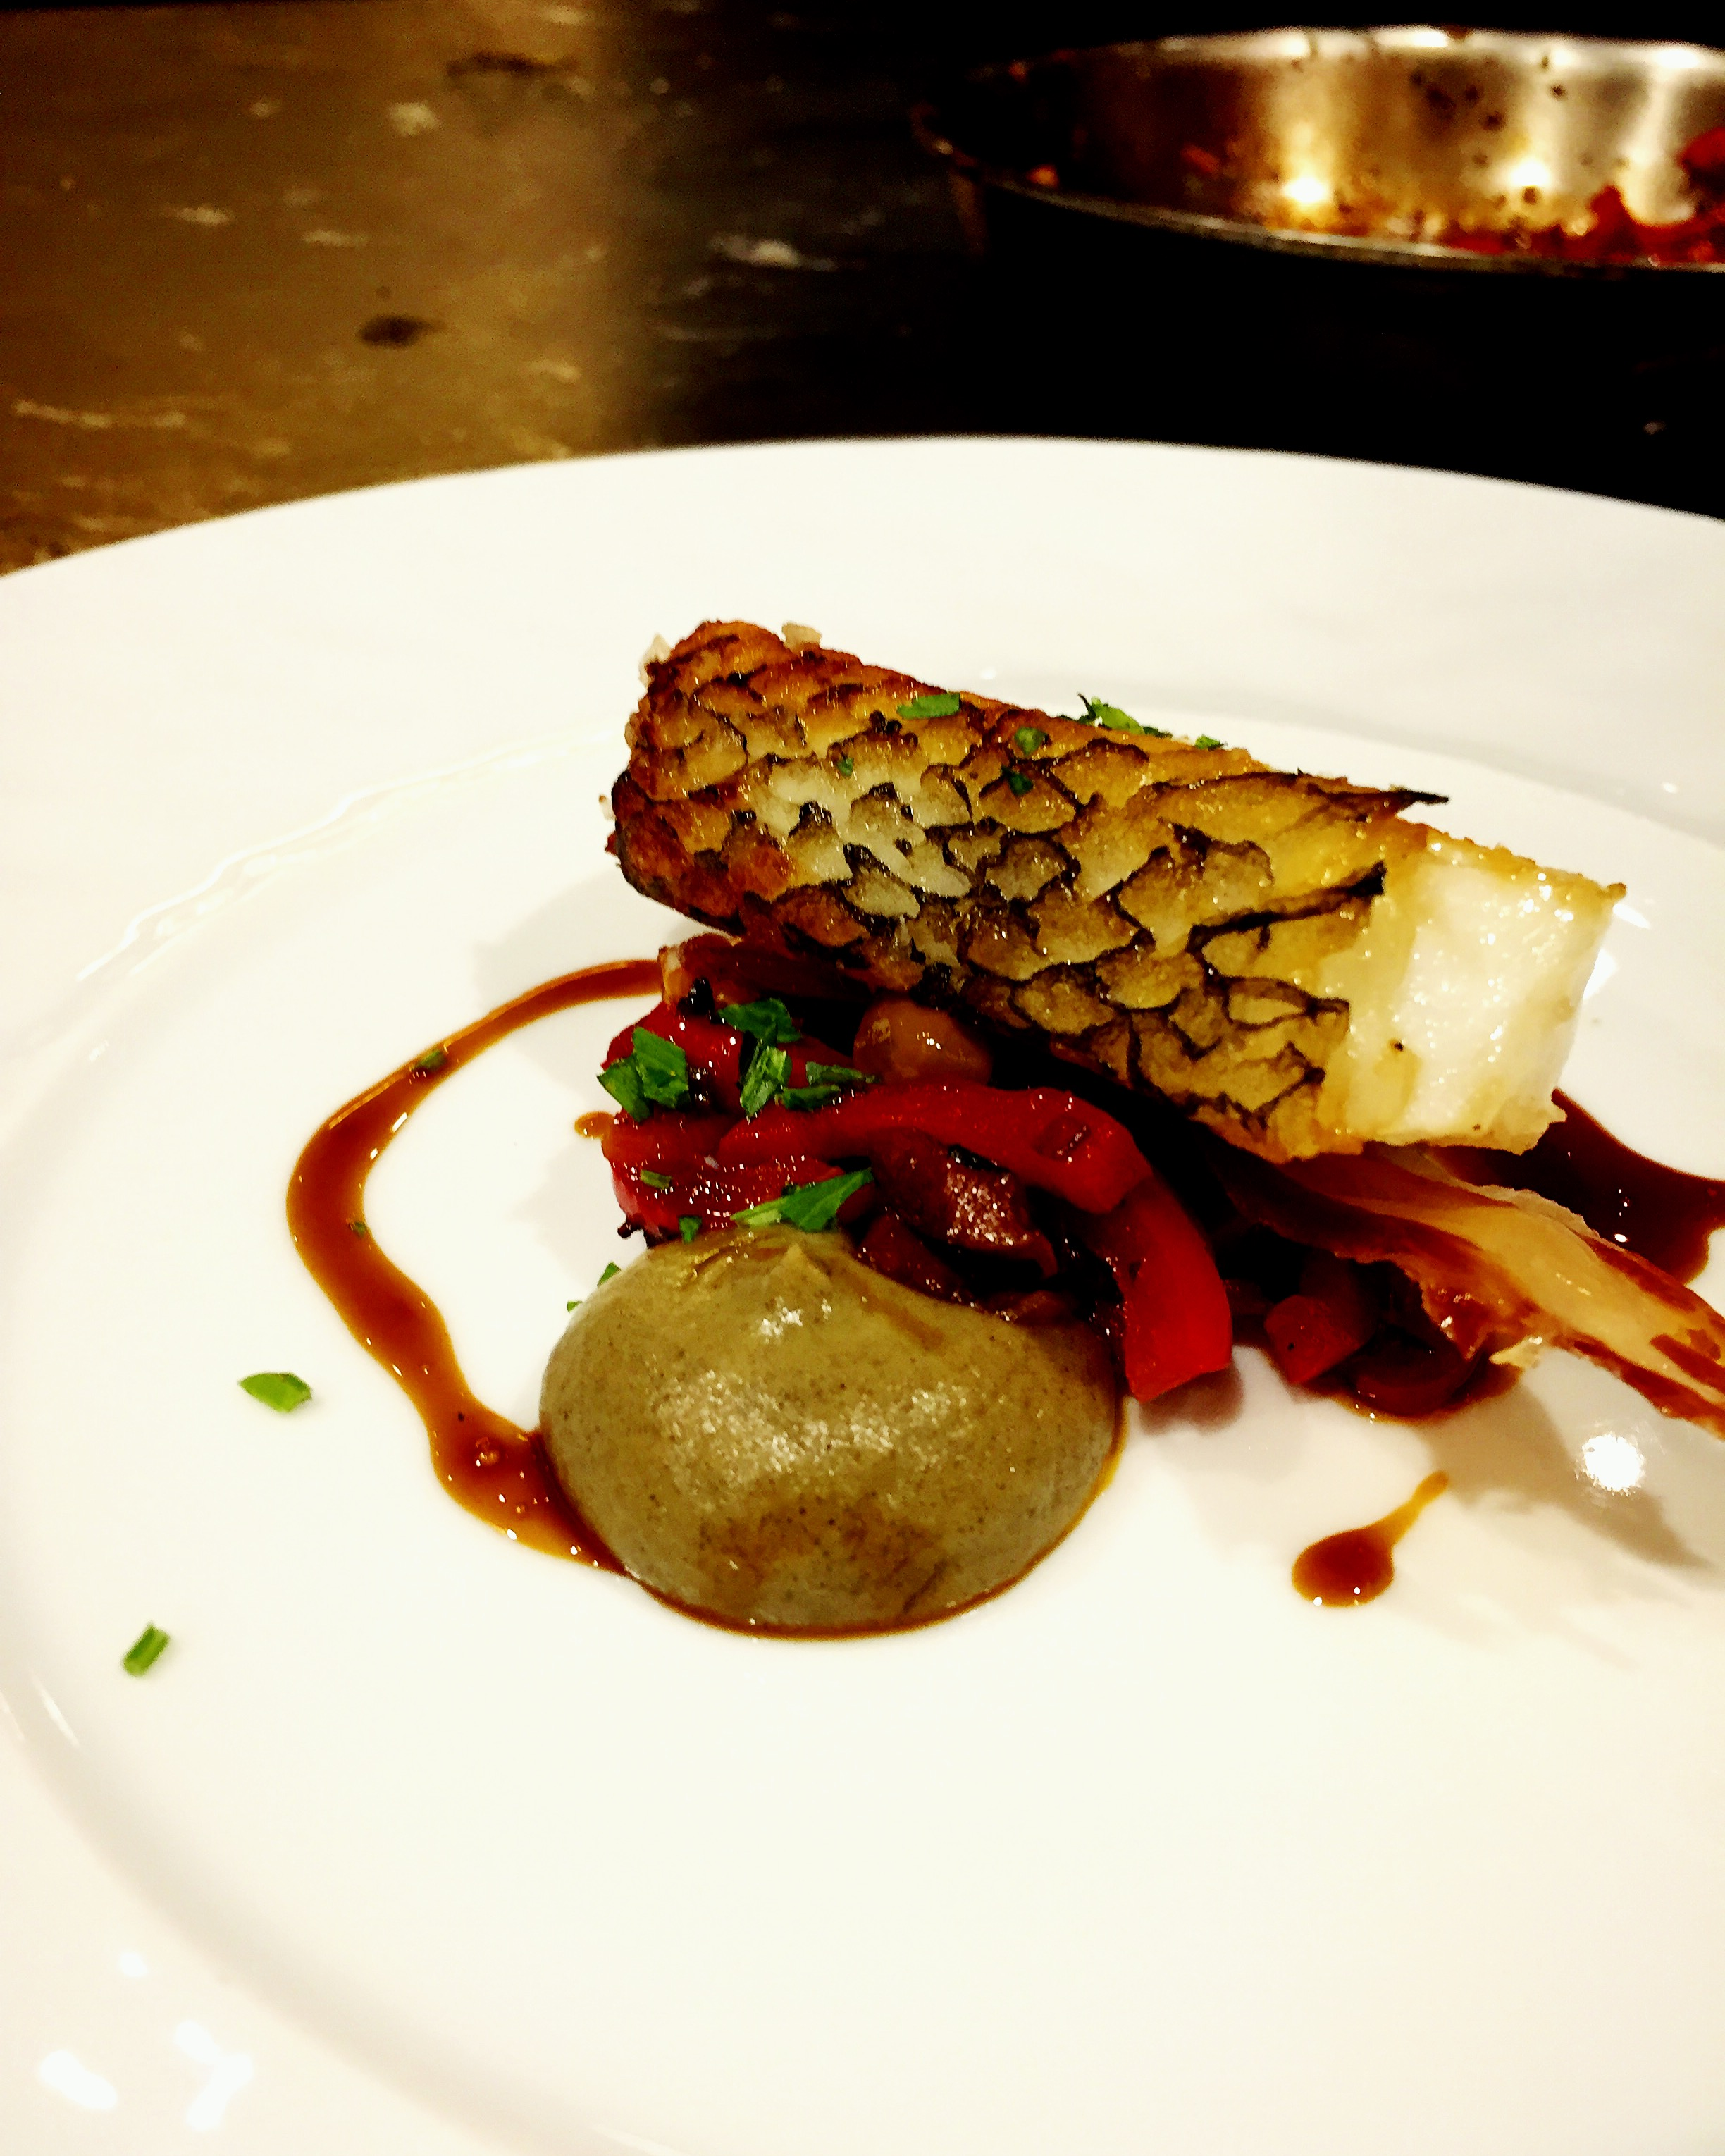 Roasted toothfish, eggplant, peppers and olives